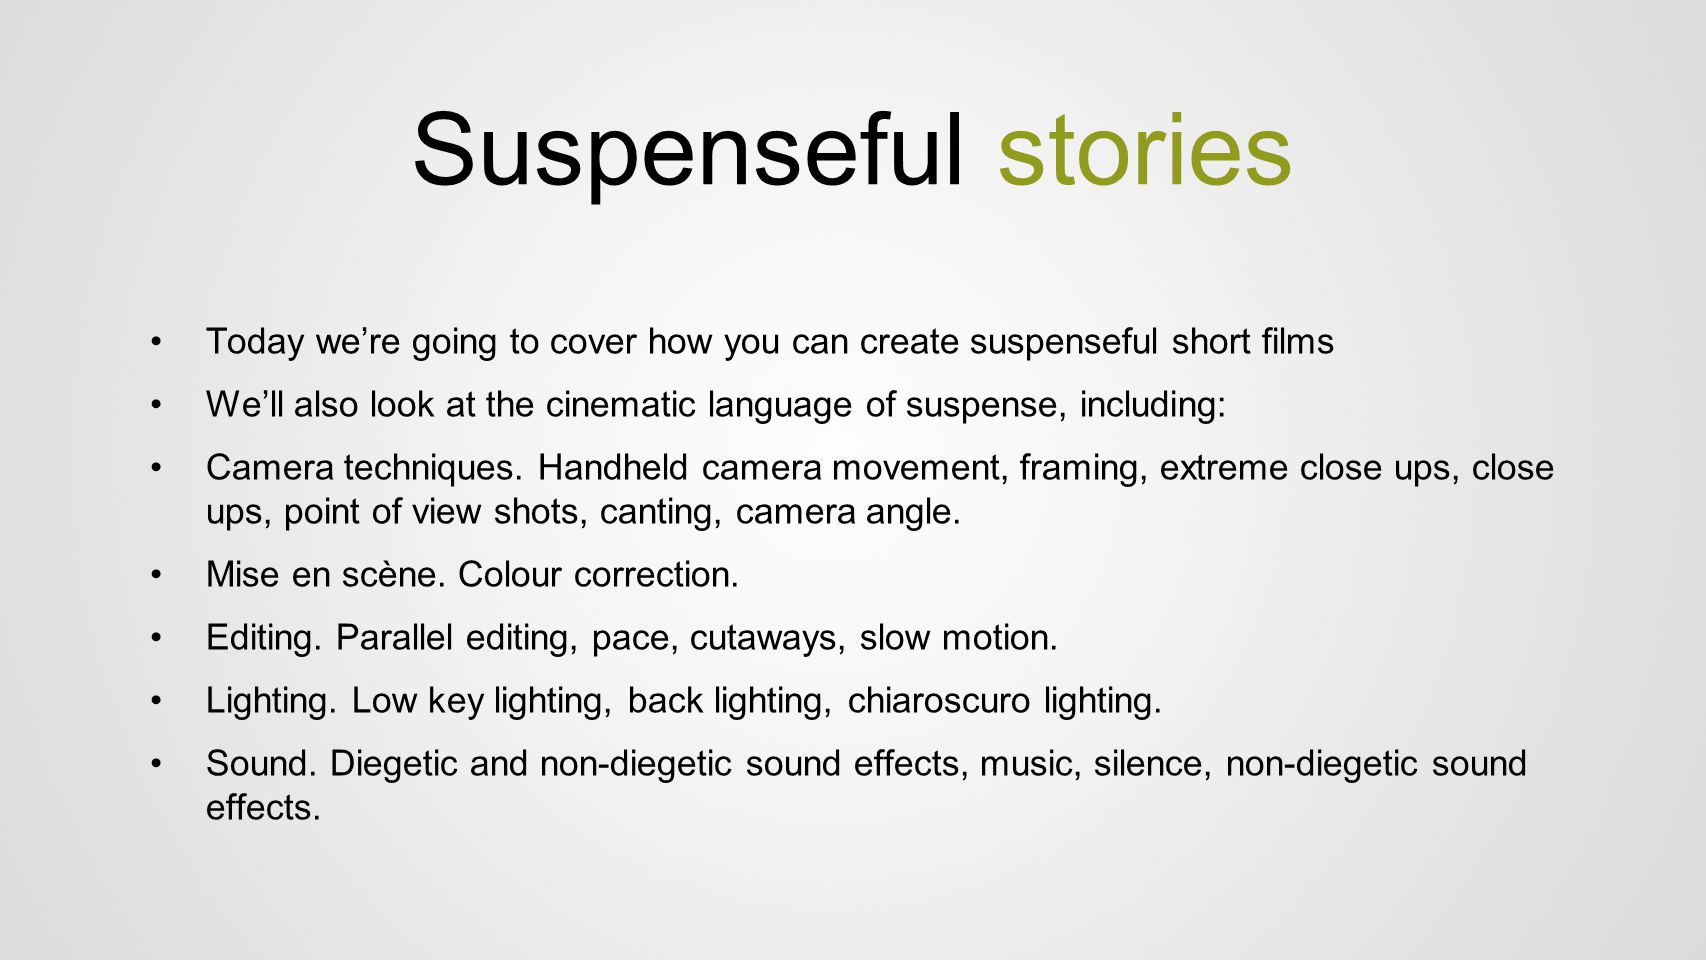 Suspenseful stories Today we're going to cover how you can create suspenseful short films.